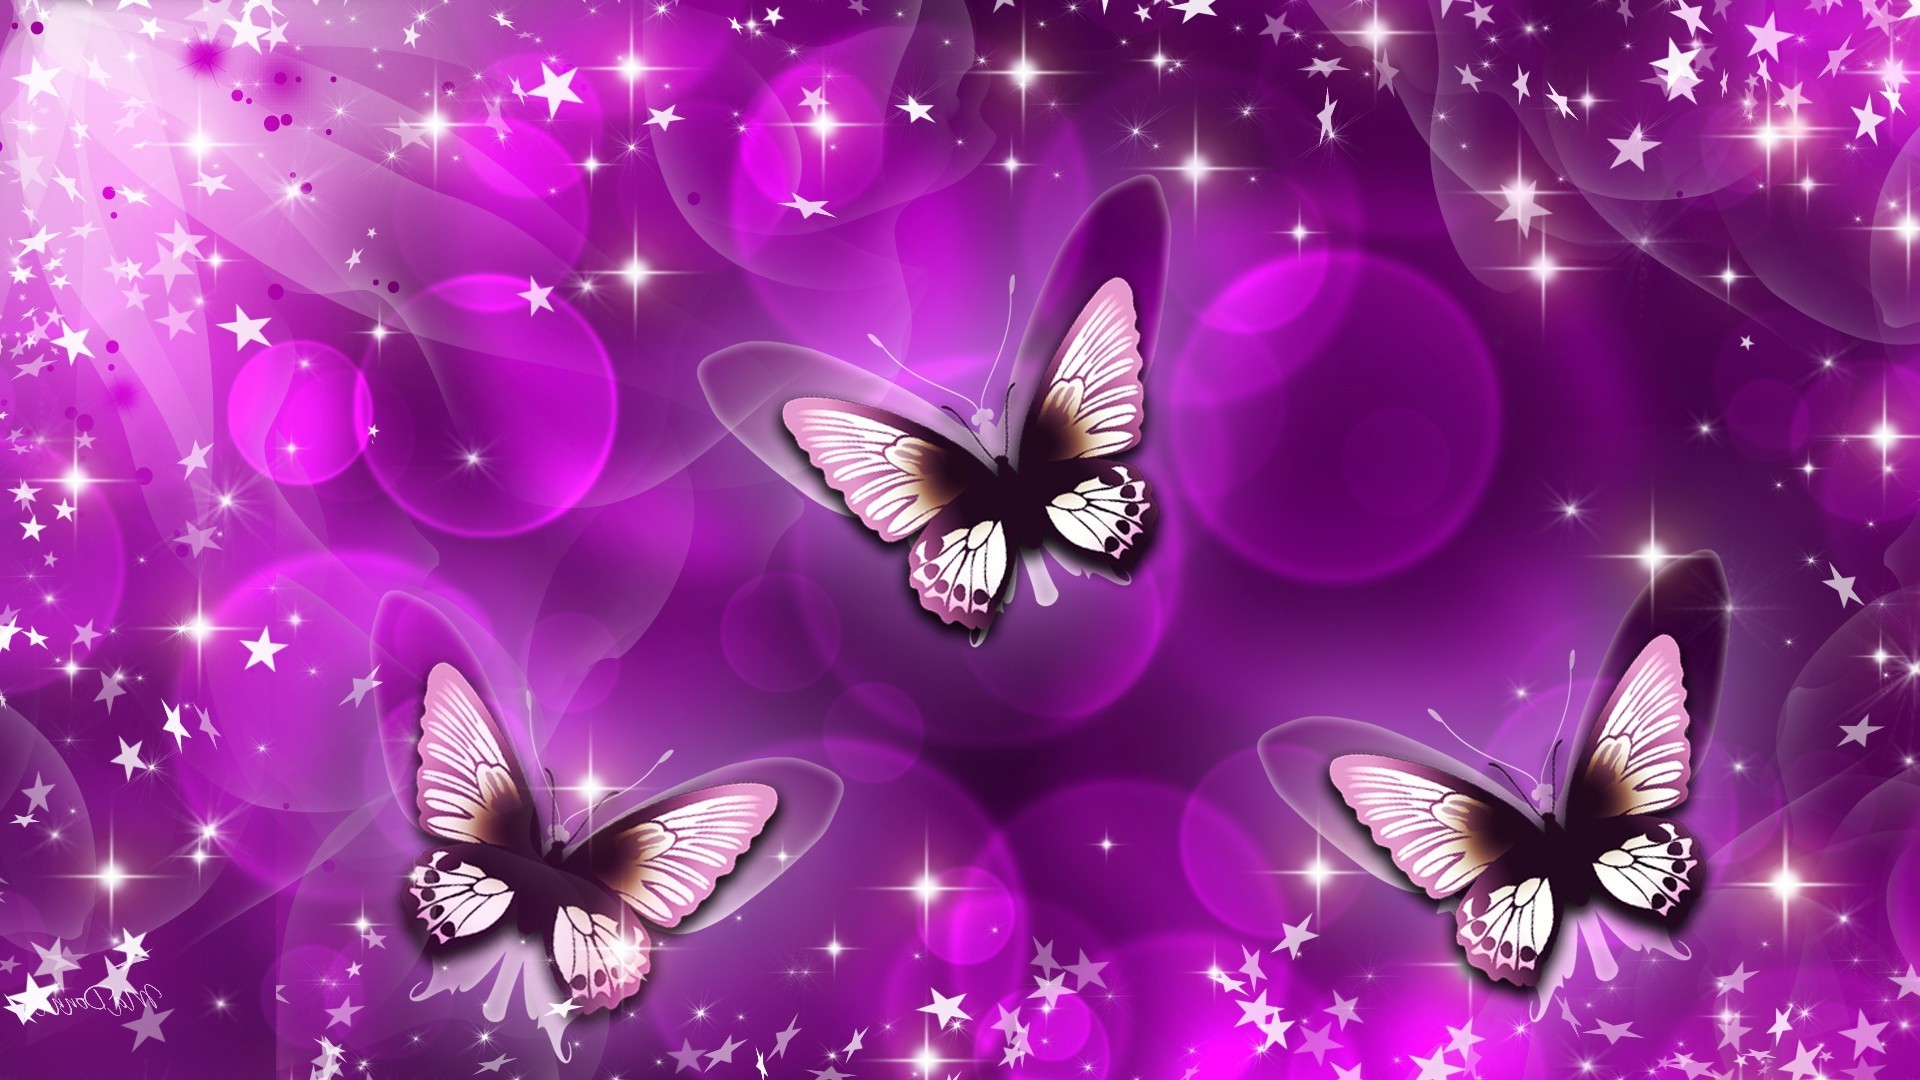 3d hd wallpaper com animated butterfly wallpaper animated butterfly .